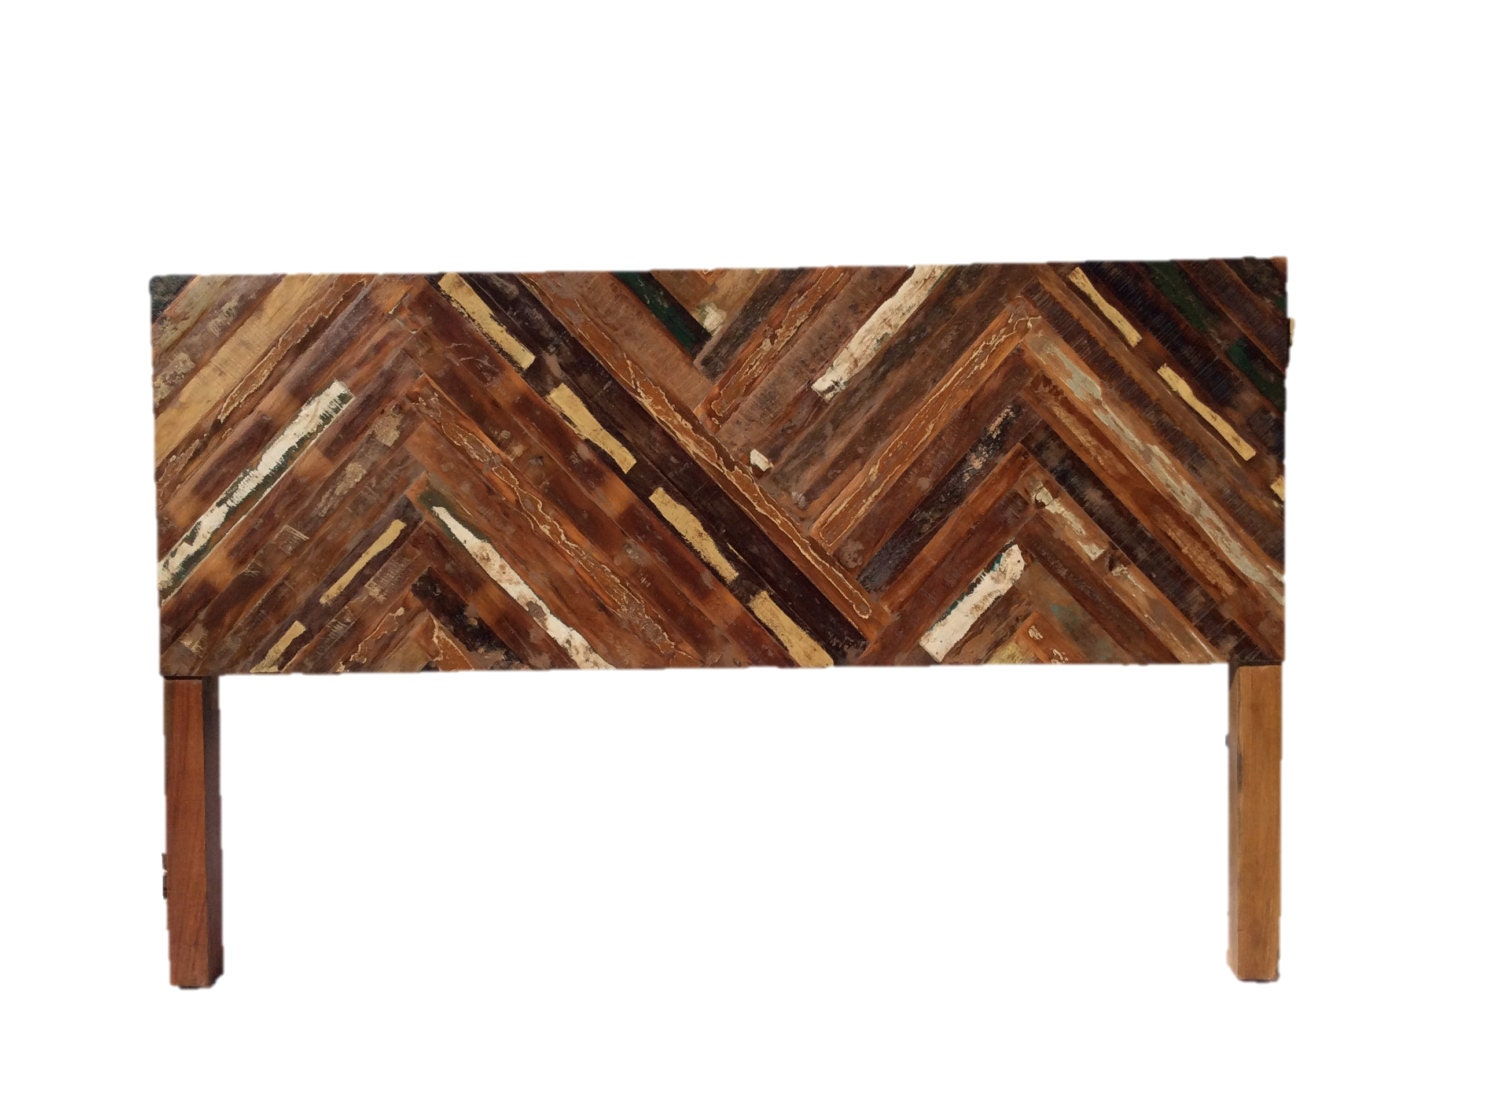 Reclaimed Wood Cal King Headboard By Shopatzen On Etsy